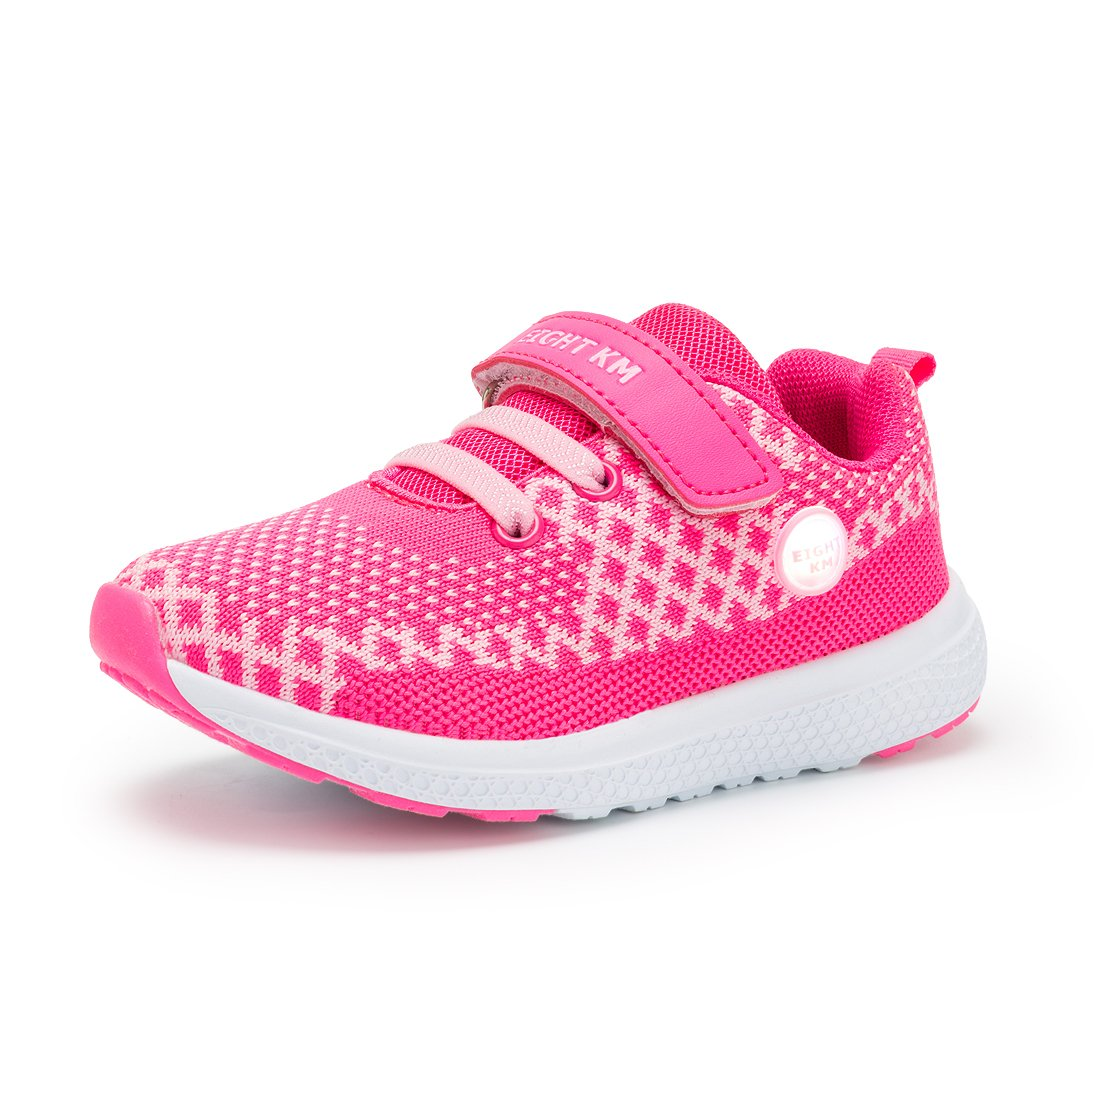 EIGHT KM EKM002 Toddler Girls & Boys Sneakers Light up Shoes Pink-5.5